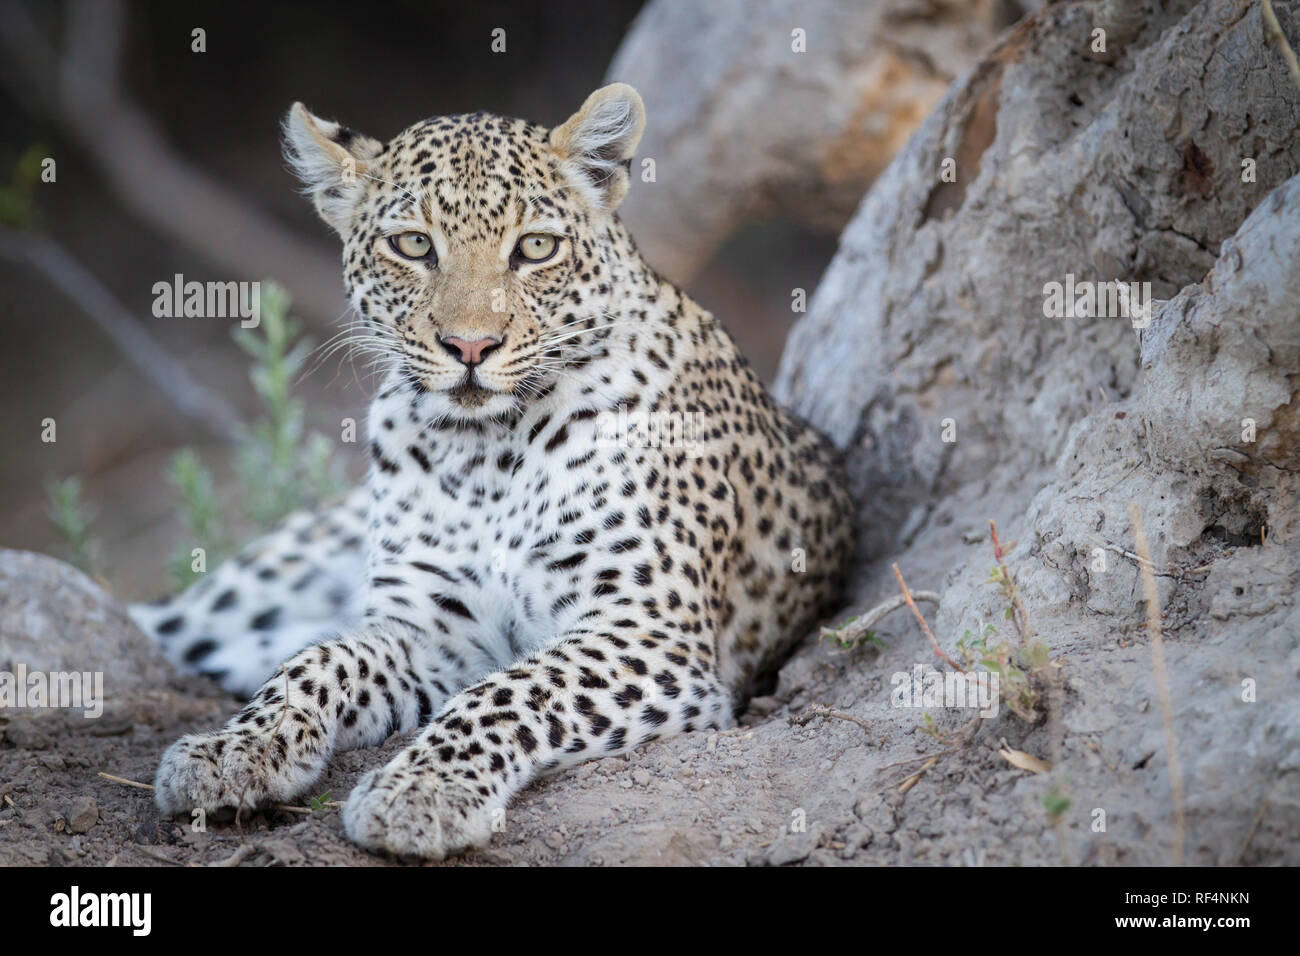 Many areas of the Okavango Delta, North West District, Botswana are famous for frequent opportunities to see big cats like leopard, Panther pardus - Stock Image